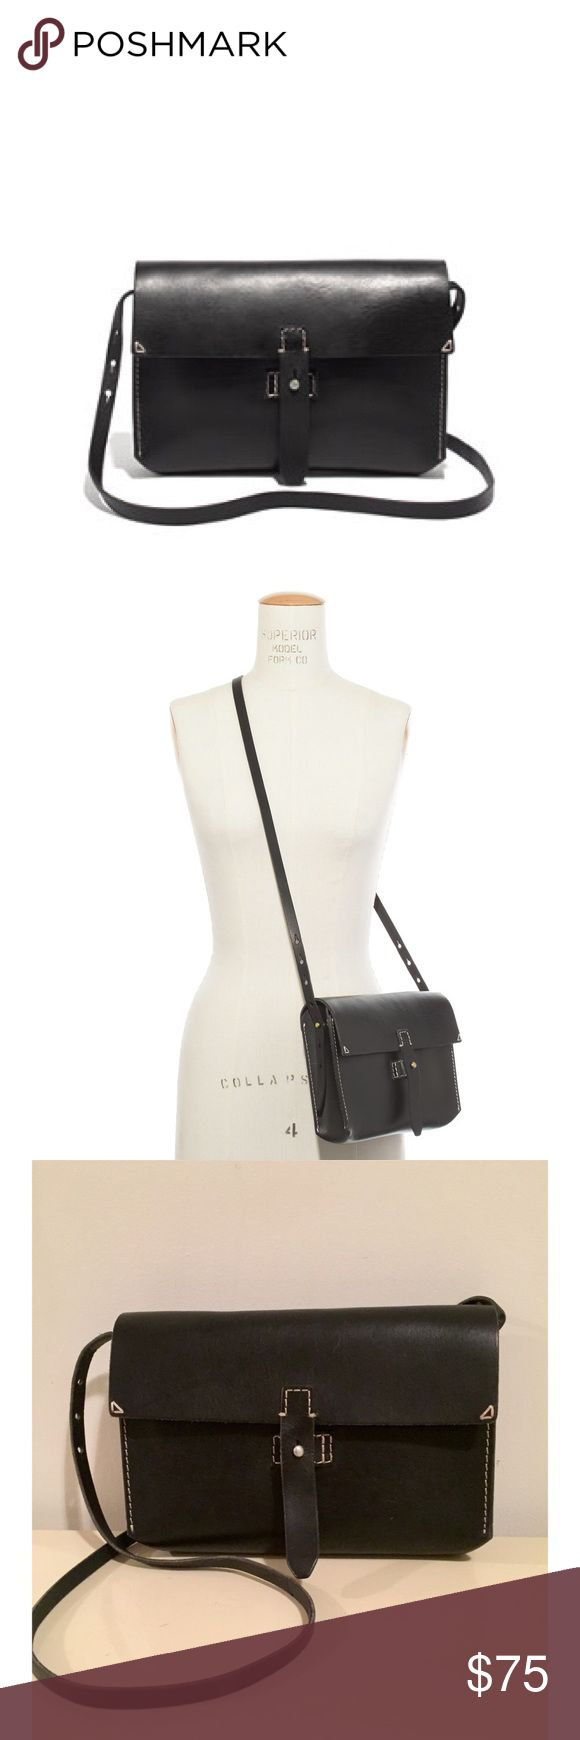 """Madewell • The Dover Crossbody Bag In excellent condition and only used twice. Interior is clean. A few very minor surface marks otherwise no issues!  -Leather -Removable, adjustable shoulder strap -Collar stud closure -17 3/4"""" handle drop -6 1/4""""H x 10""""W x 2""""D -Any questions, please ask!  Madewell describes: this ruggedly cool crossbody was inspired by military style—and made to last and last. The strap is adjustable and removable (so you can carry it as a clutch). Closes with one of our…"""